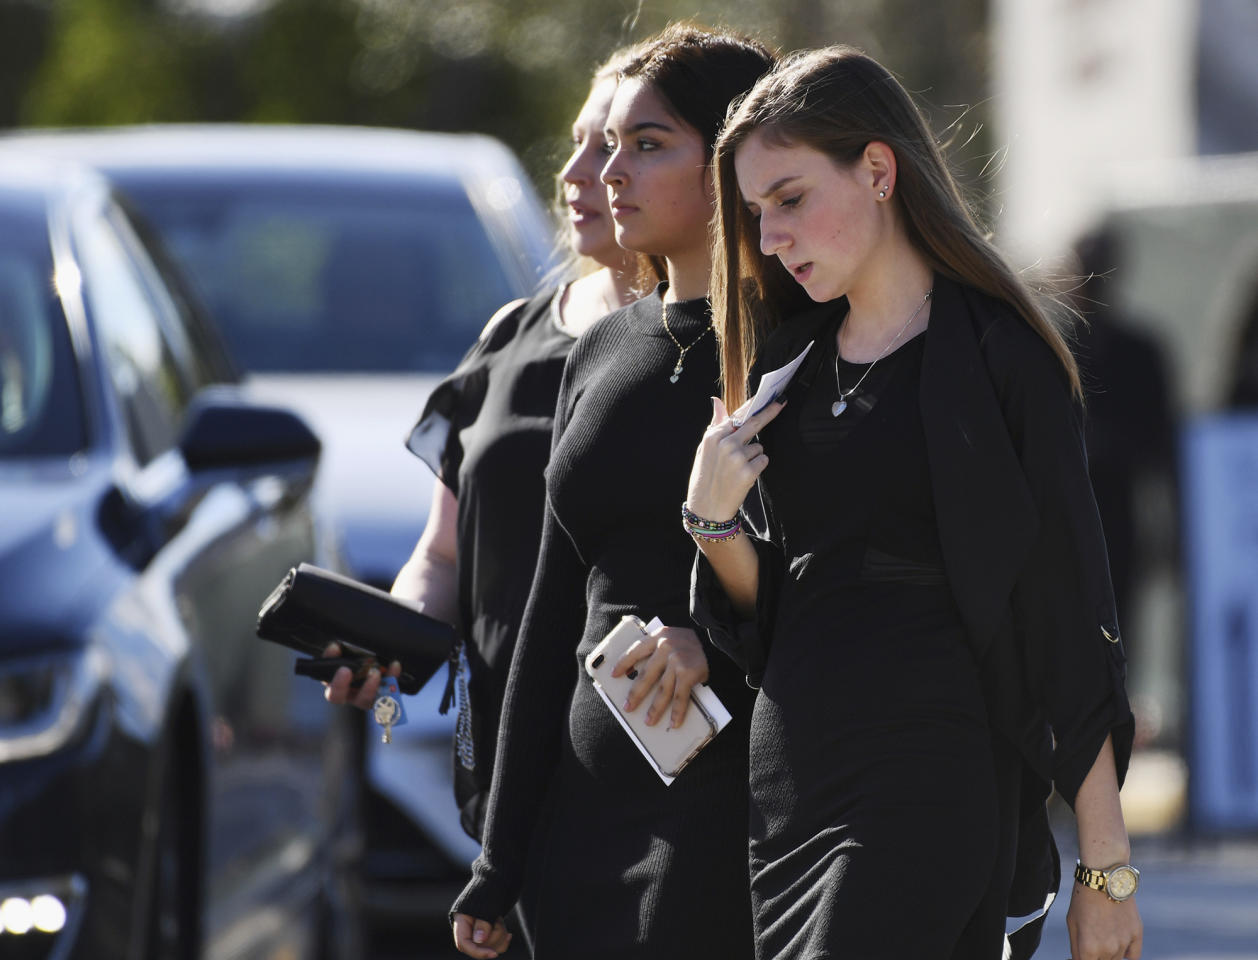 Mourners leave the funeral service at Temple Beth El in Boca Raton, Fla., for Scott Beigel, a teacher at Marjory Stoneman Douglas High School who was killed in Wednesday's mass shooting, on Sunday, Feb. 18, 2018. (Jim Rassol/South Florida Sun-Sentinel via AP)